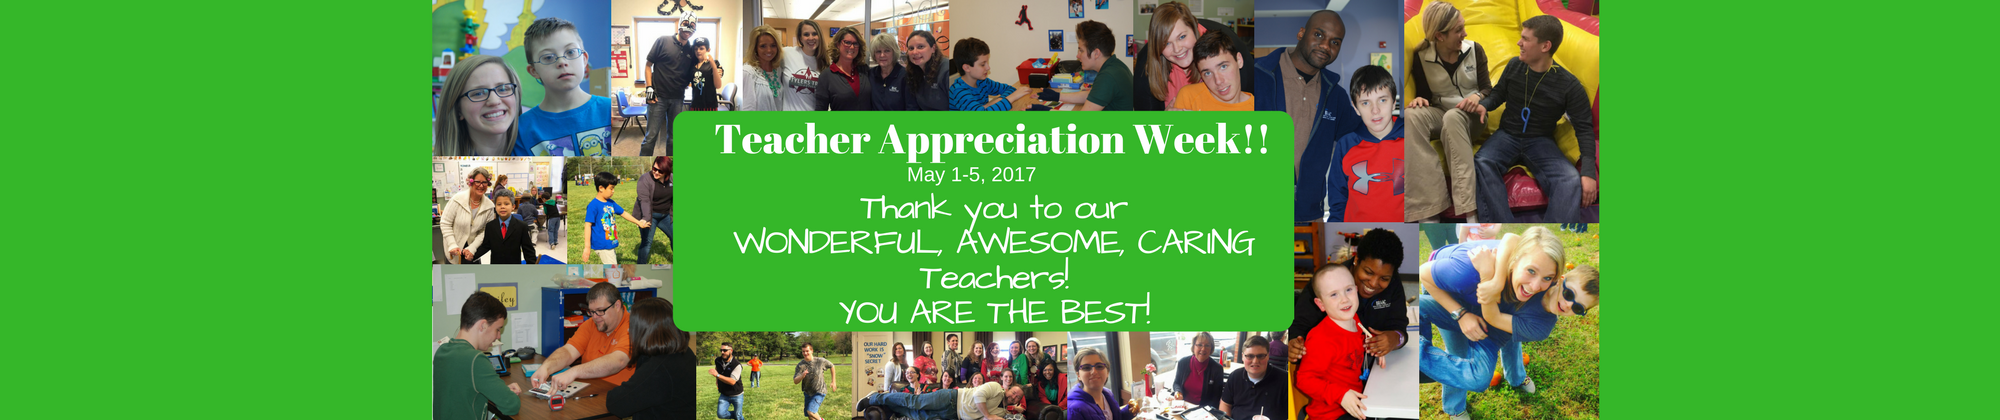 Teacher-Appreciation-Week-Slider-Website